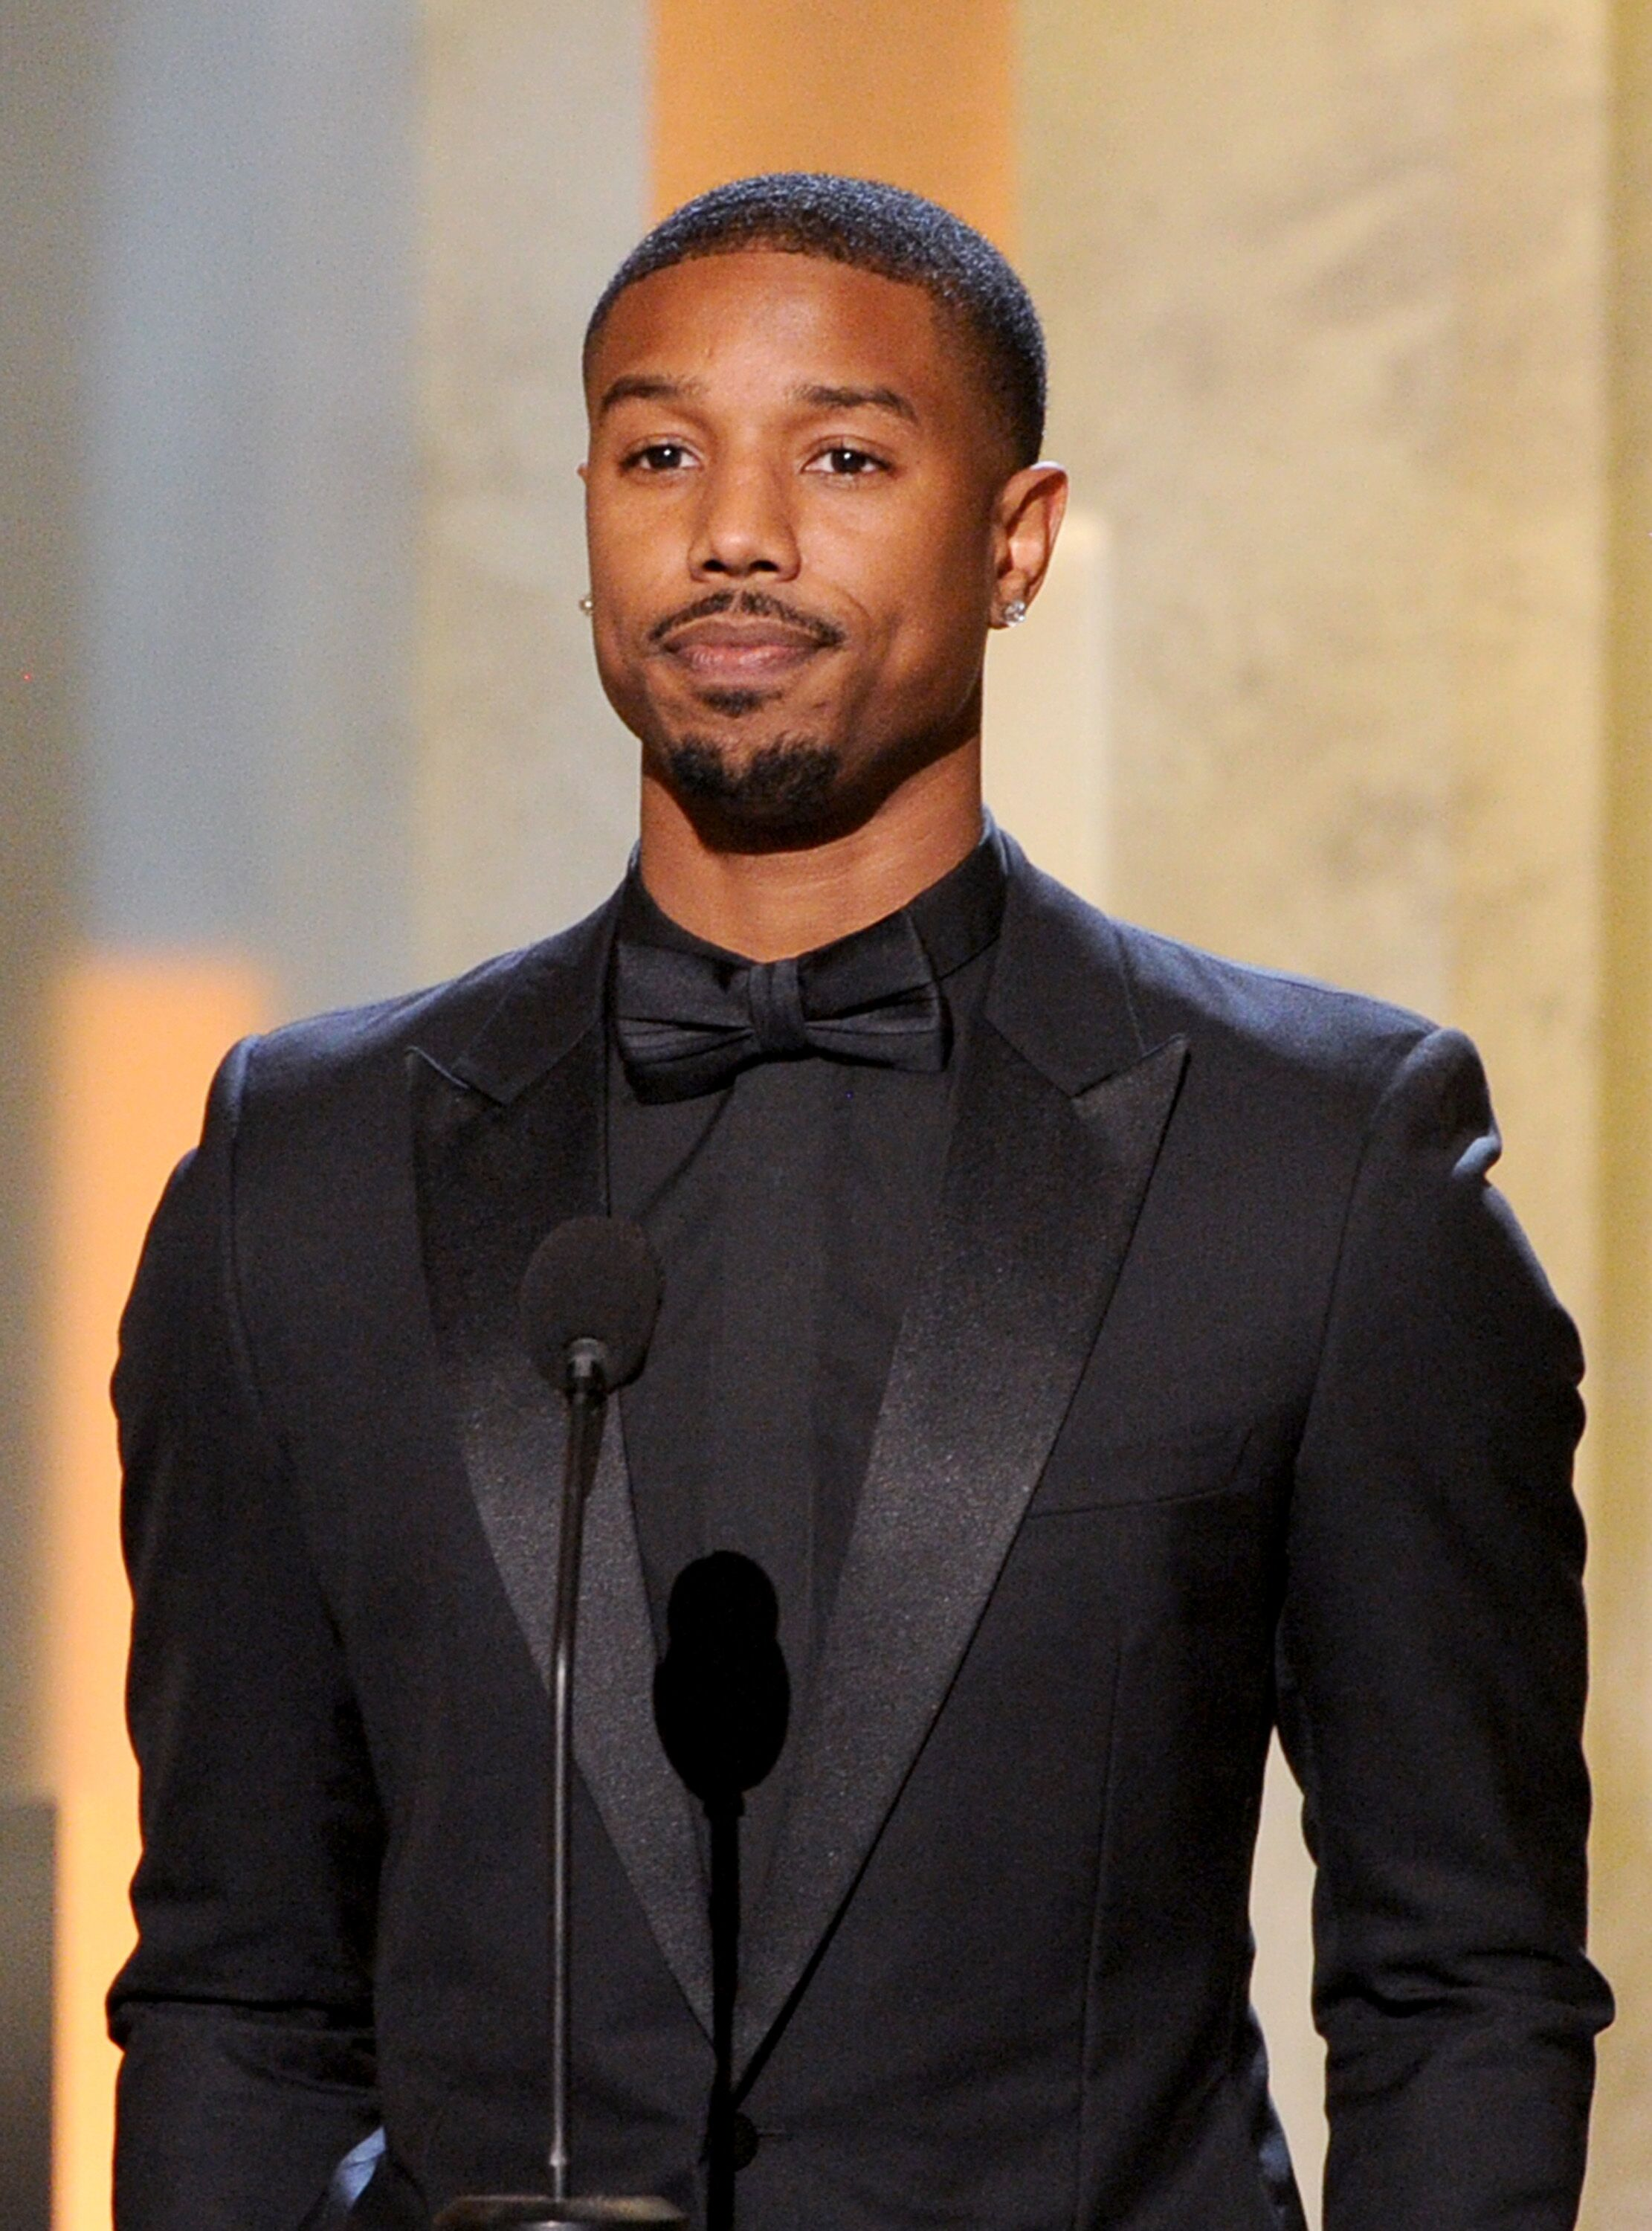 Actor Michael B. Jordan speaks onstage during the 45th NAACP Image Awards presented by TV One at Pasadena Civic Auditorium on February 22, 2014 in Pasadena, California | Photo: Getty Images